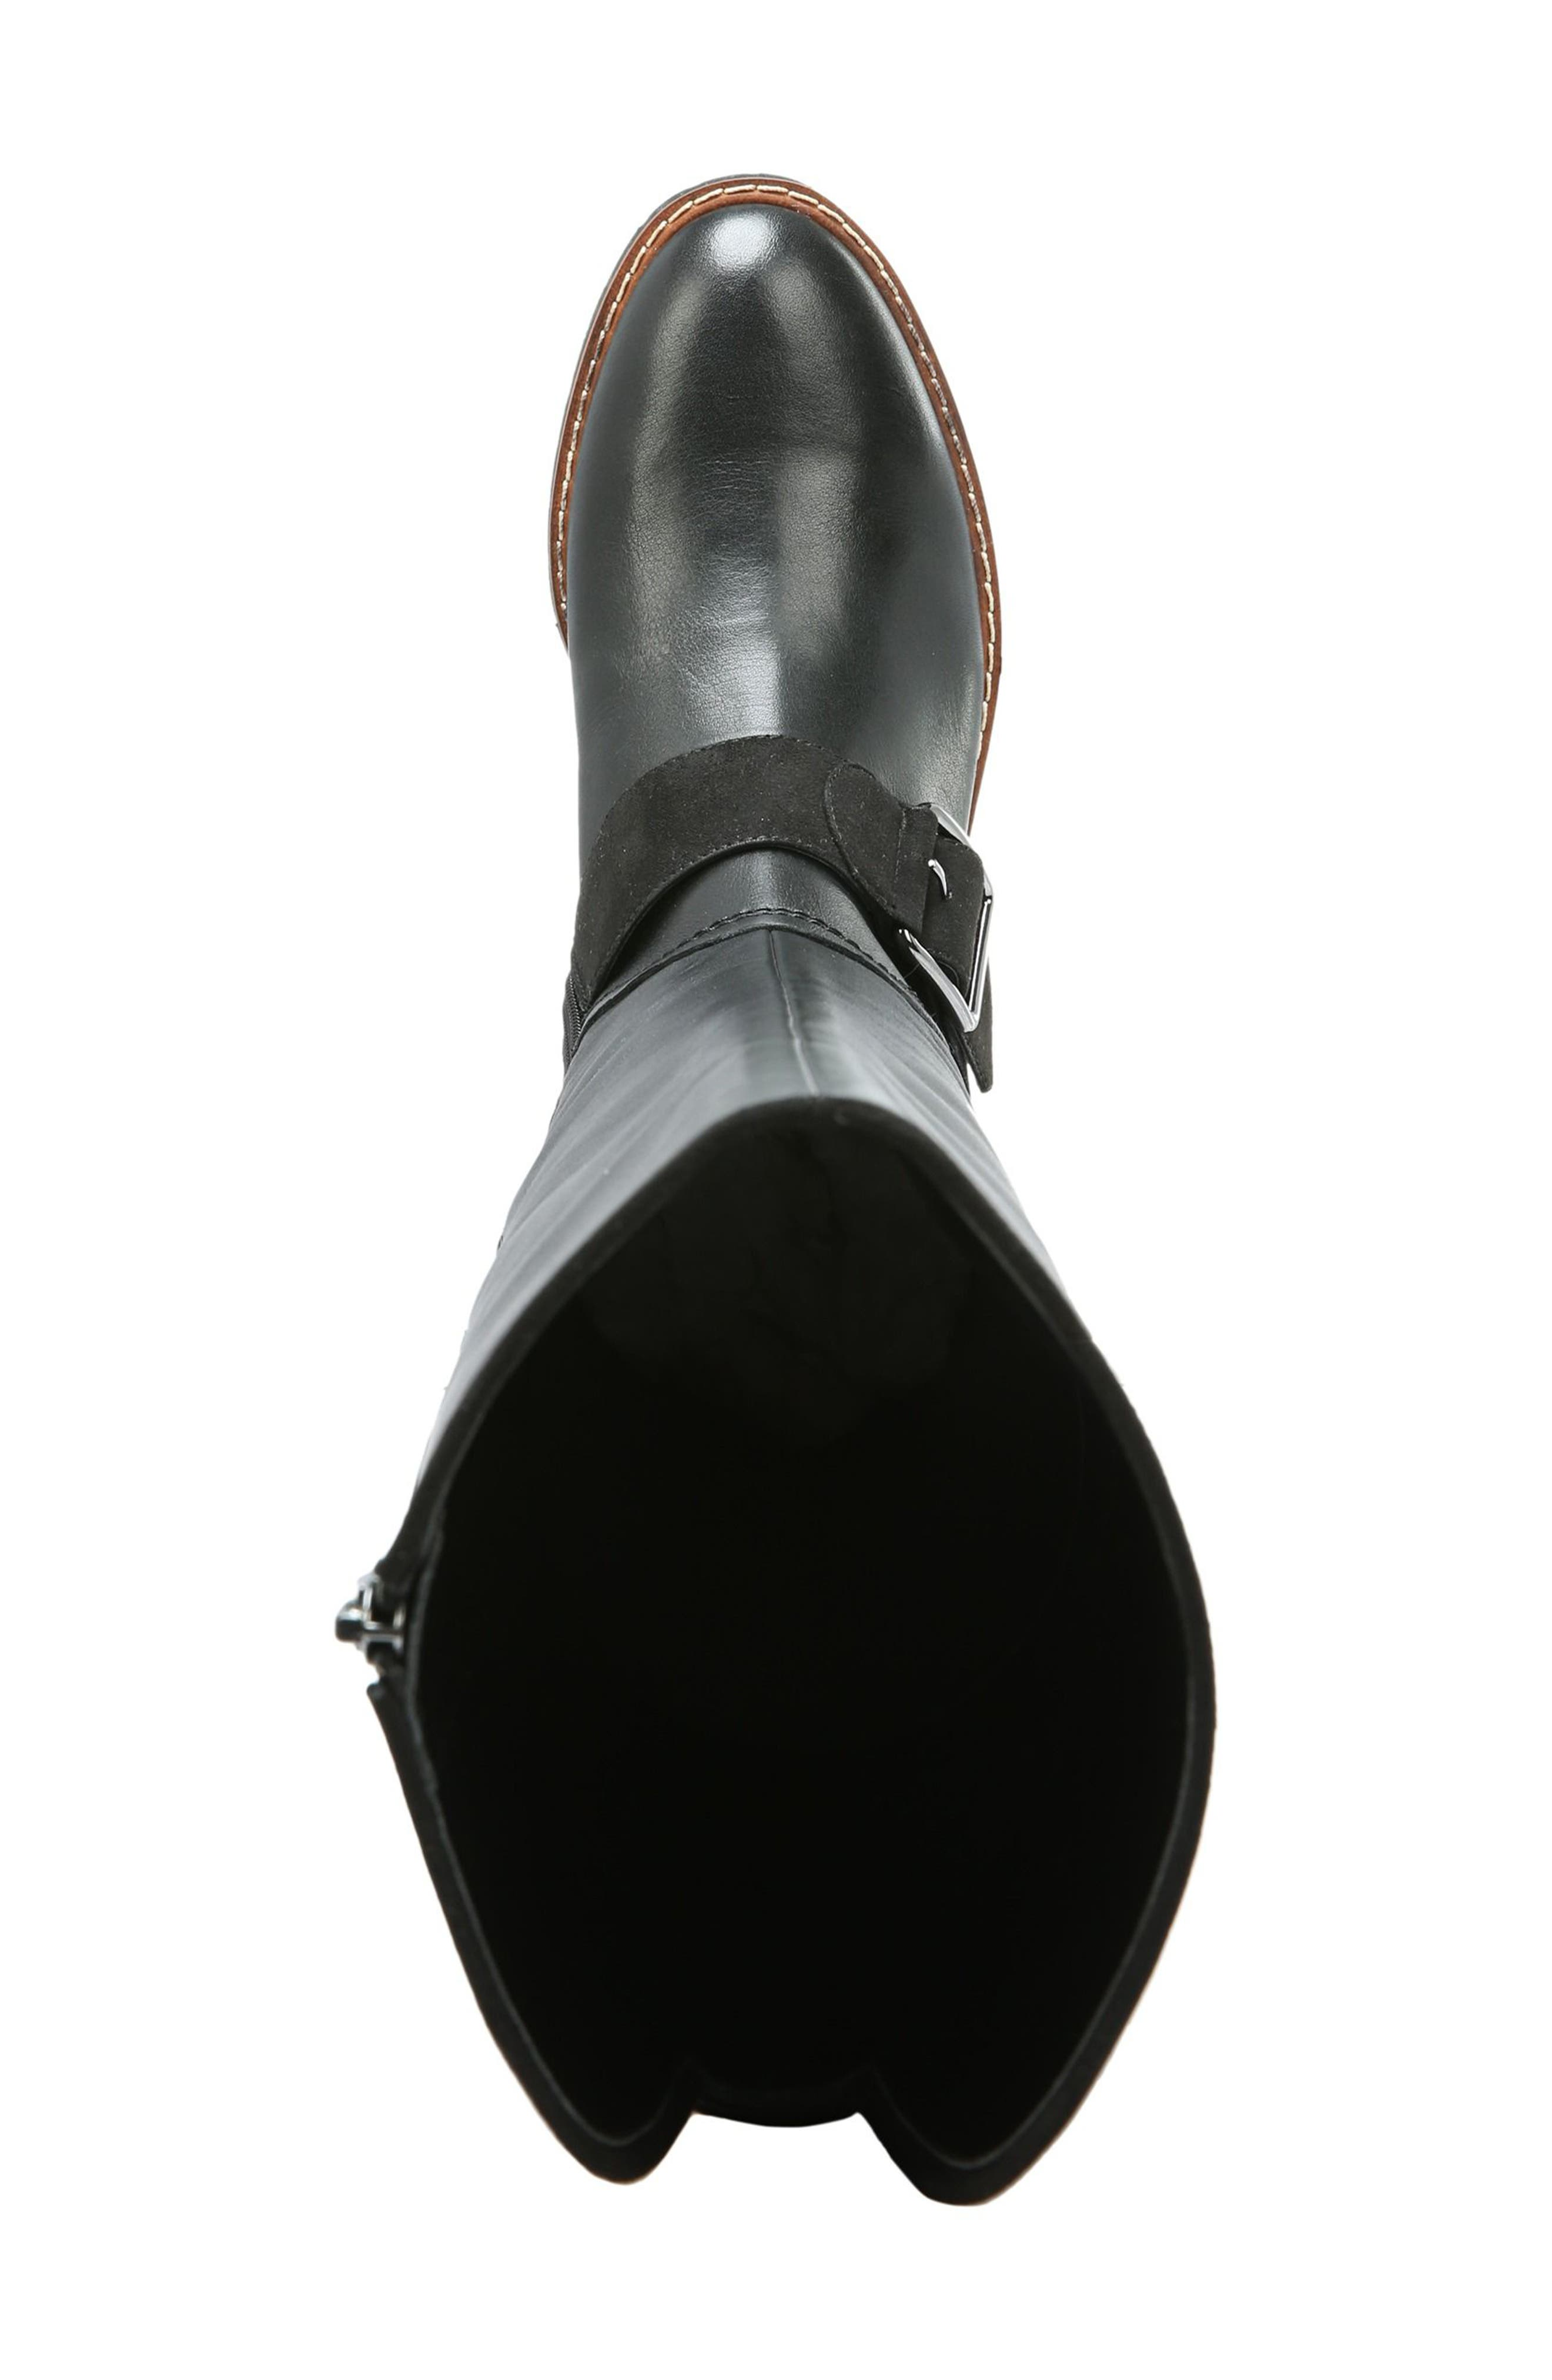 Cutler Riding Boot,                             Alternate thumbnail 5, color,                             Black Leather